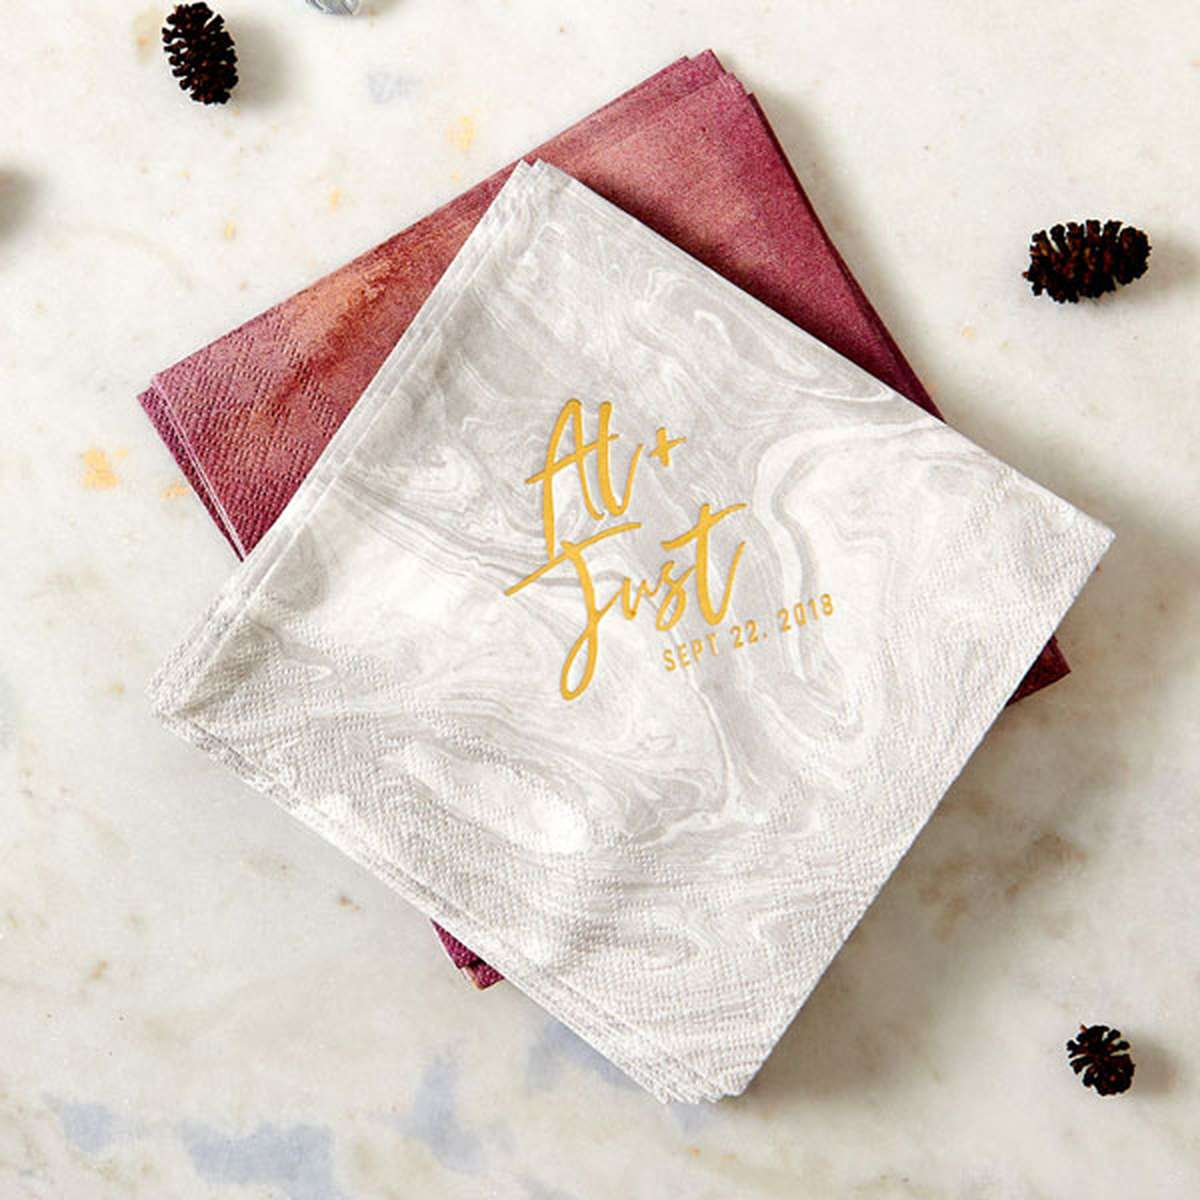 Wedding Napkins Matches Cups And Favors For Your Party